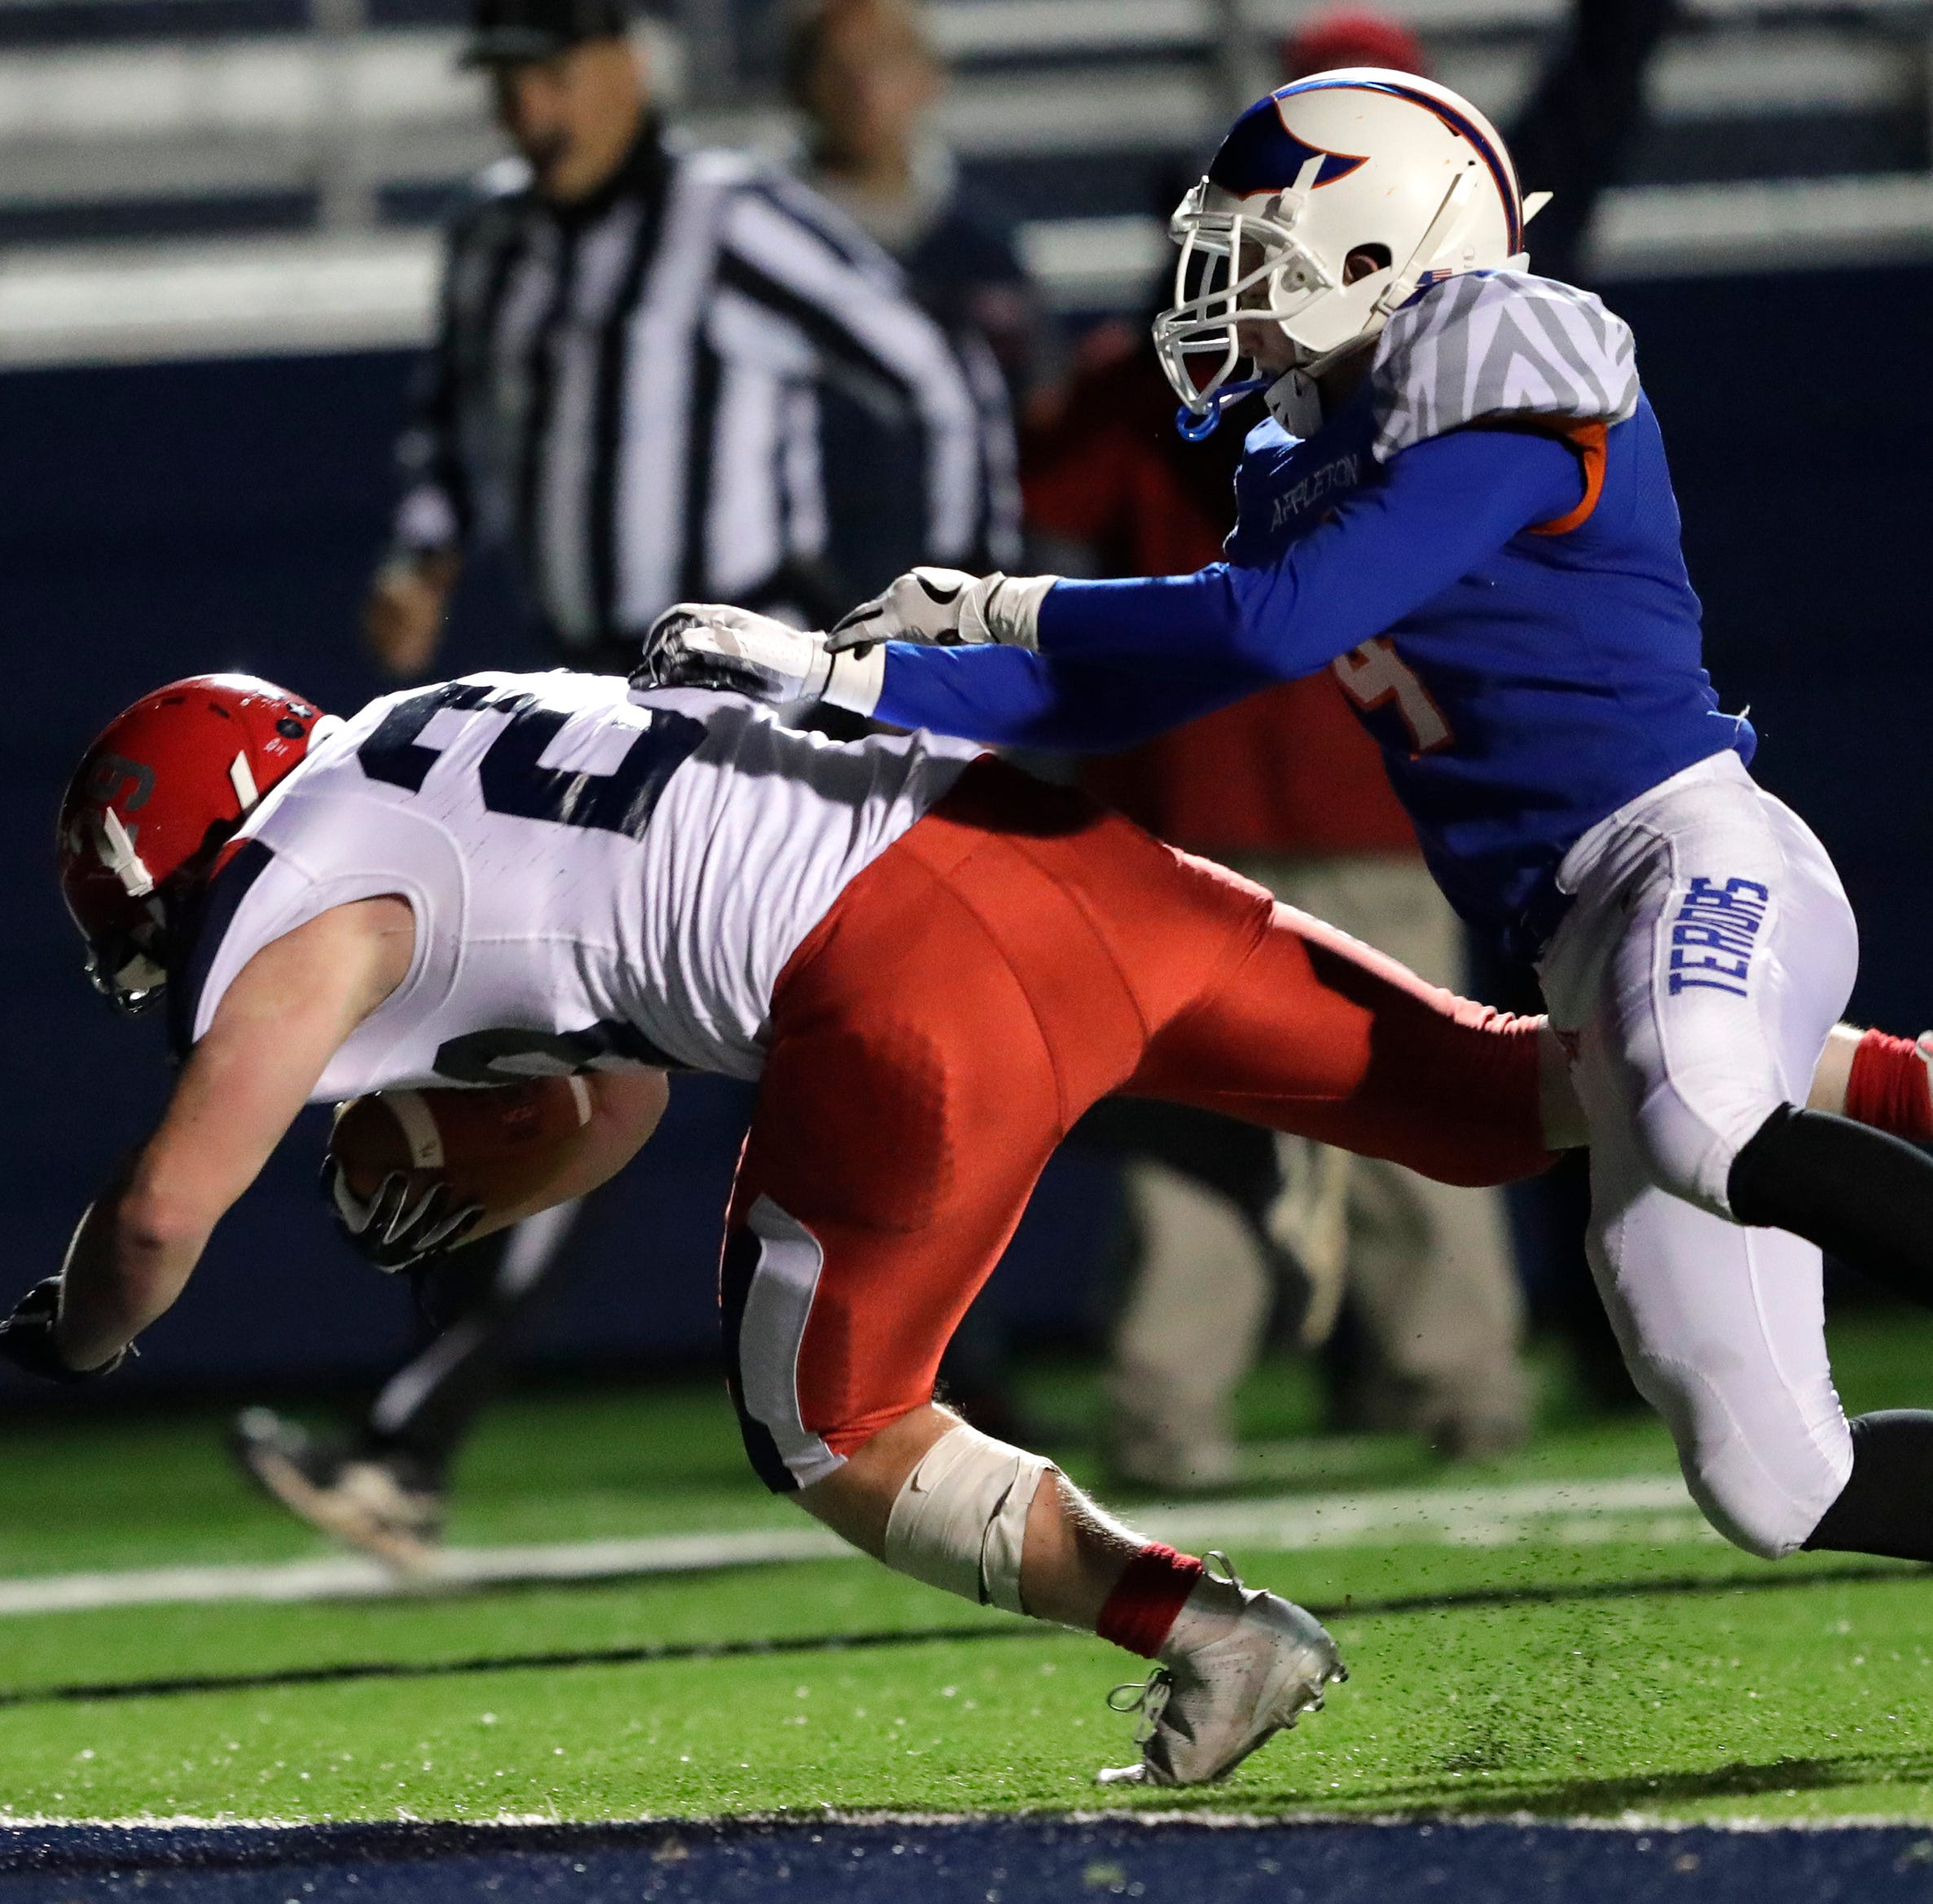 High school football: Appleton East edges Appleton West in two overtimes